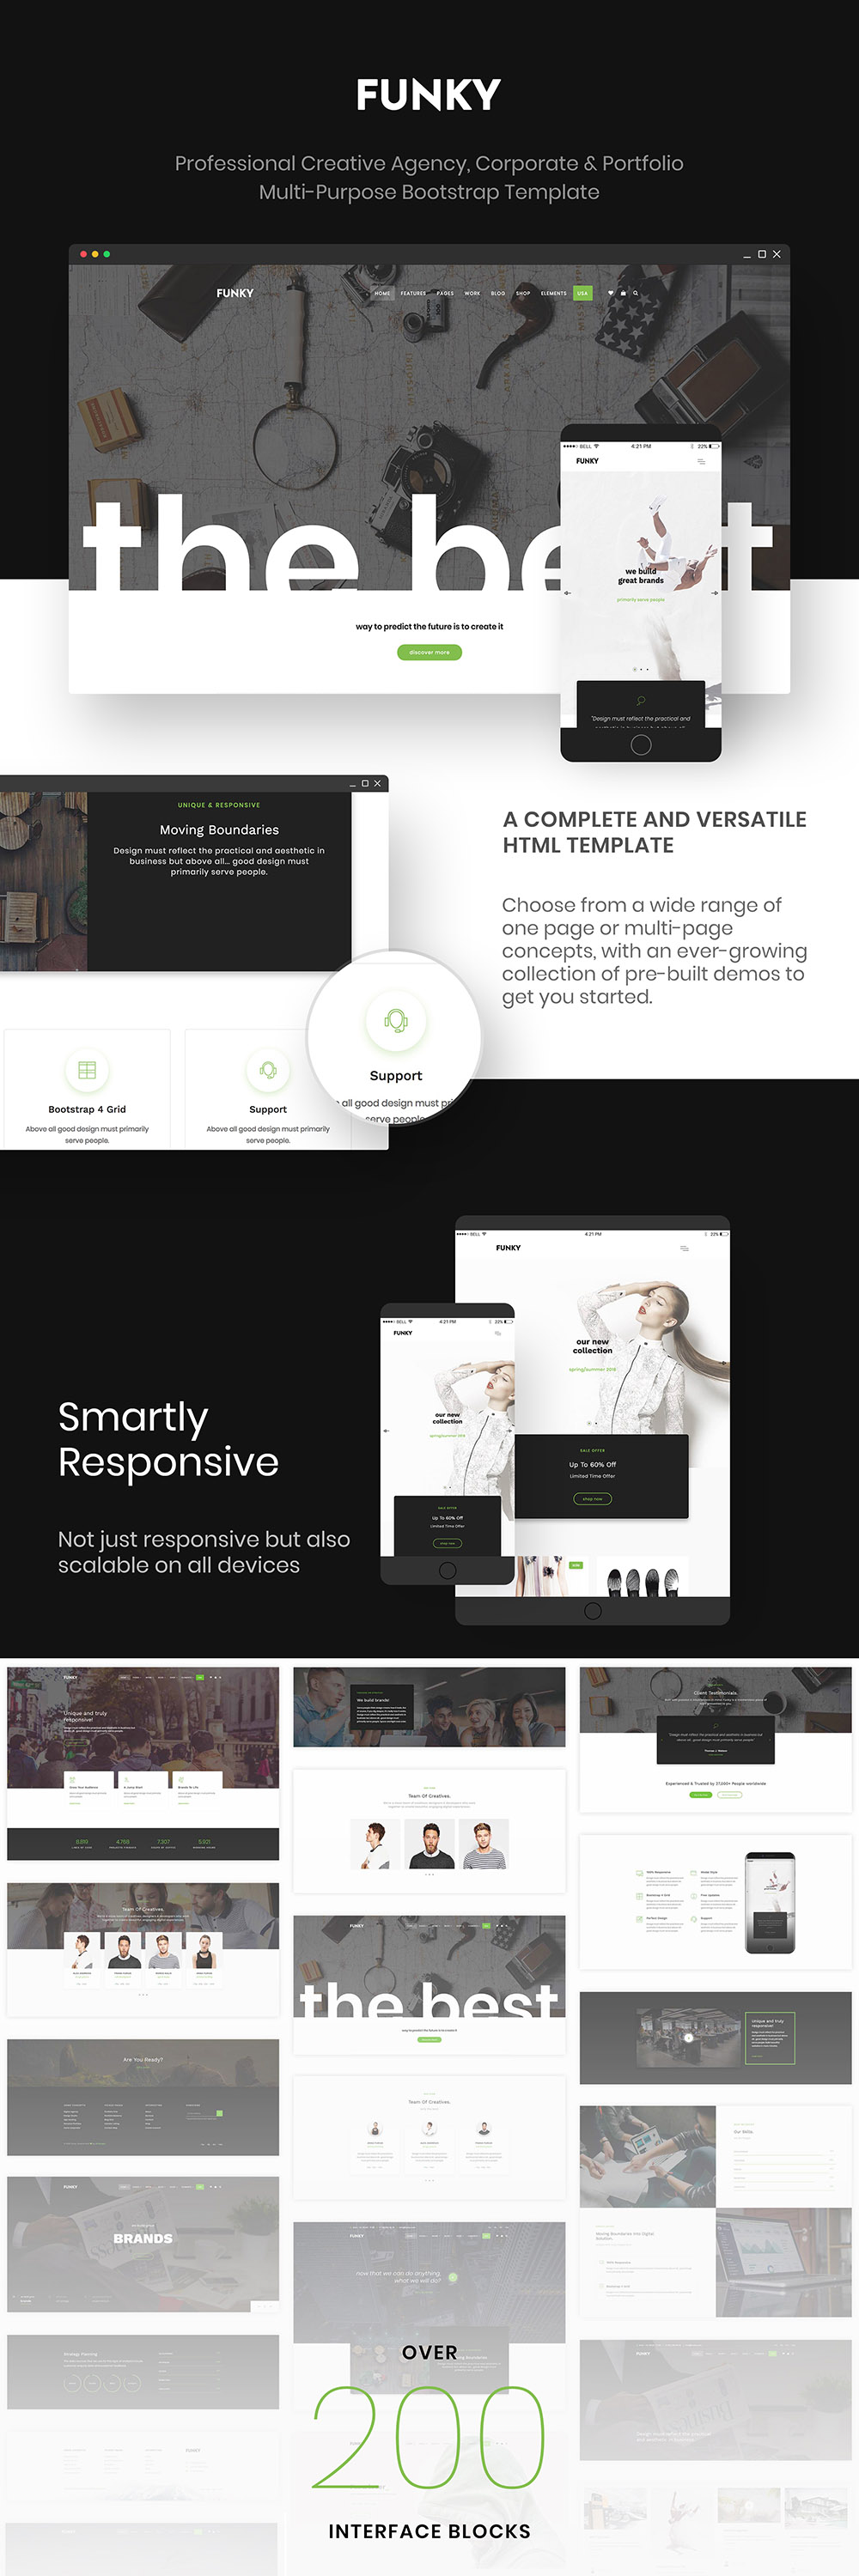 Funky - Professional Creative Multi-Purpose Template by IG_design ...